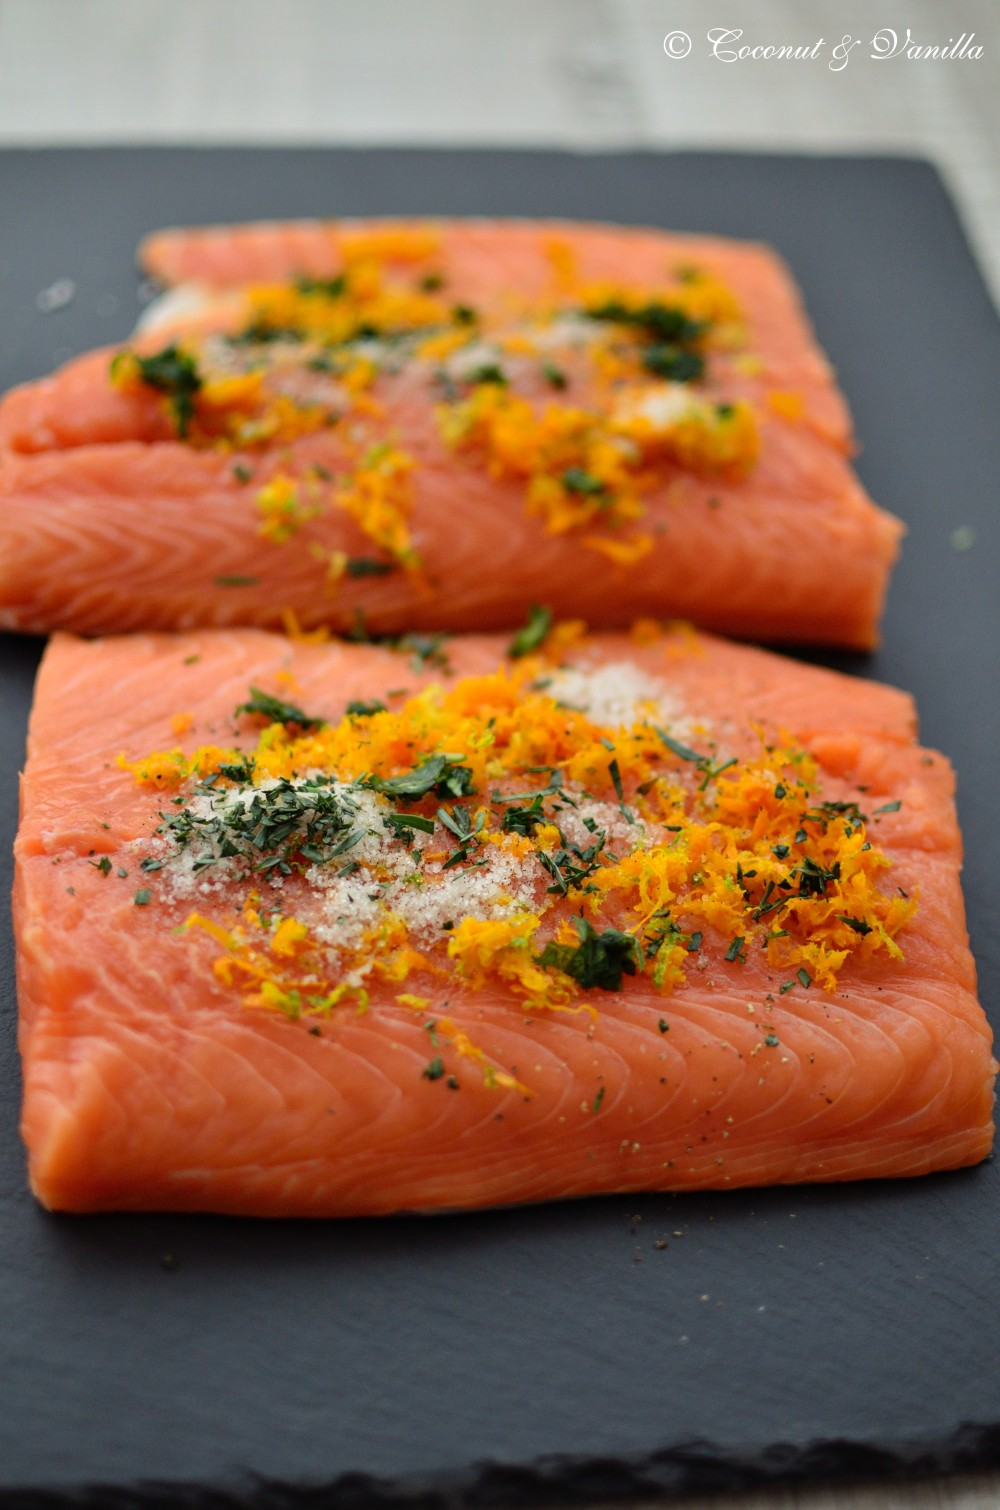 Homemade Gravlax with Orange, Tarragon & Vanilla